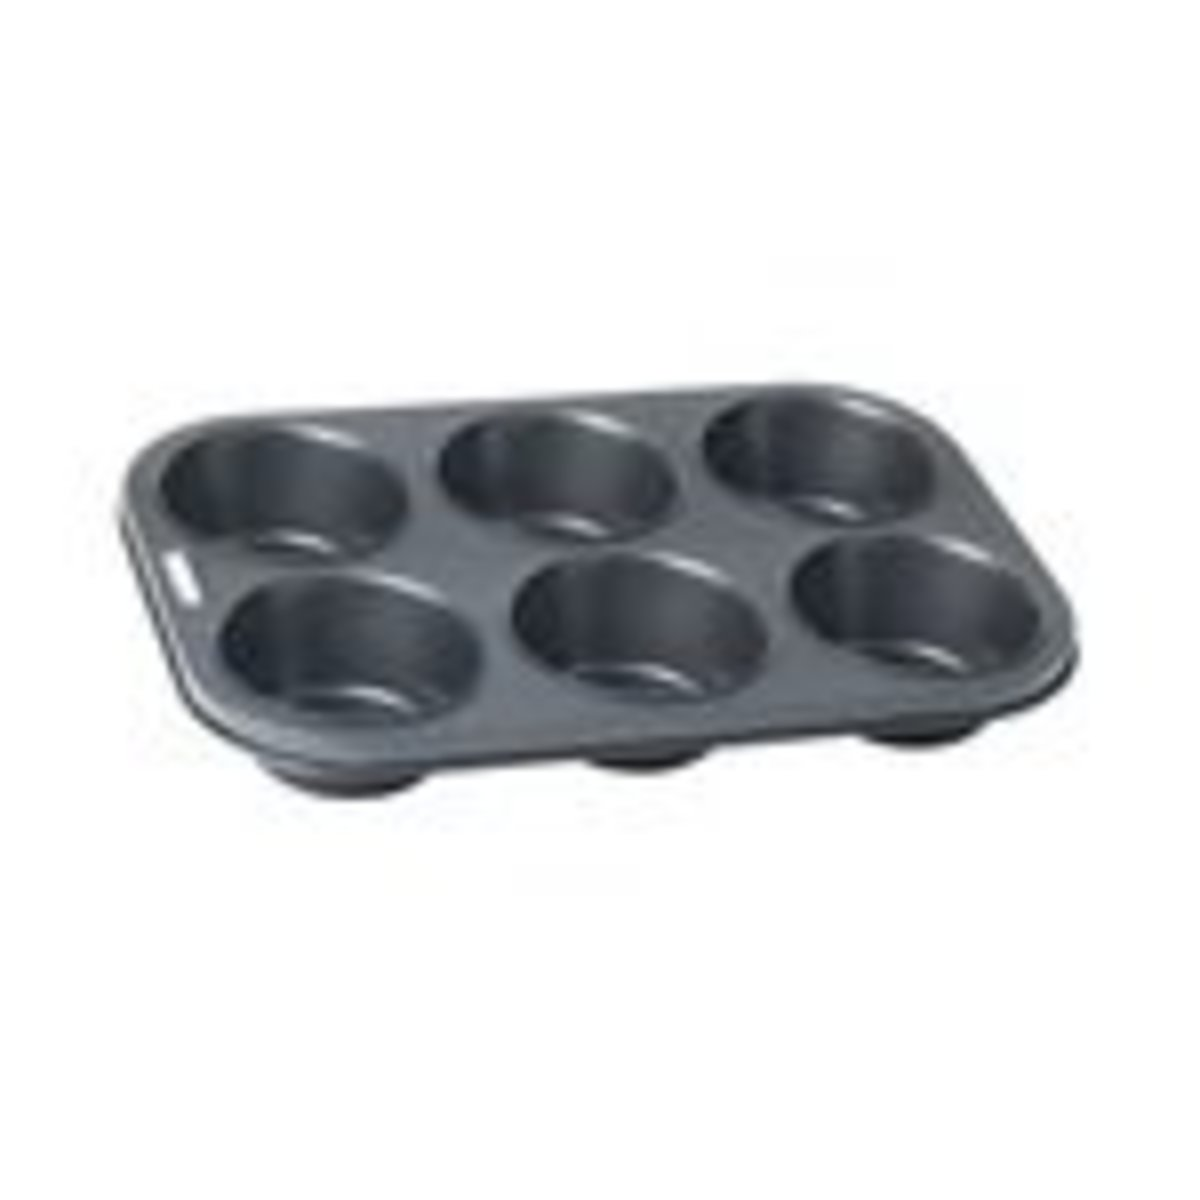 Easybake Muffin Pan Texas 6 Cup